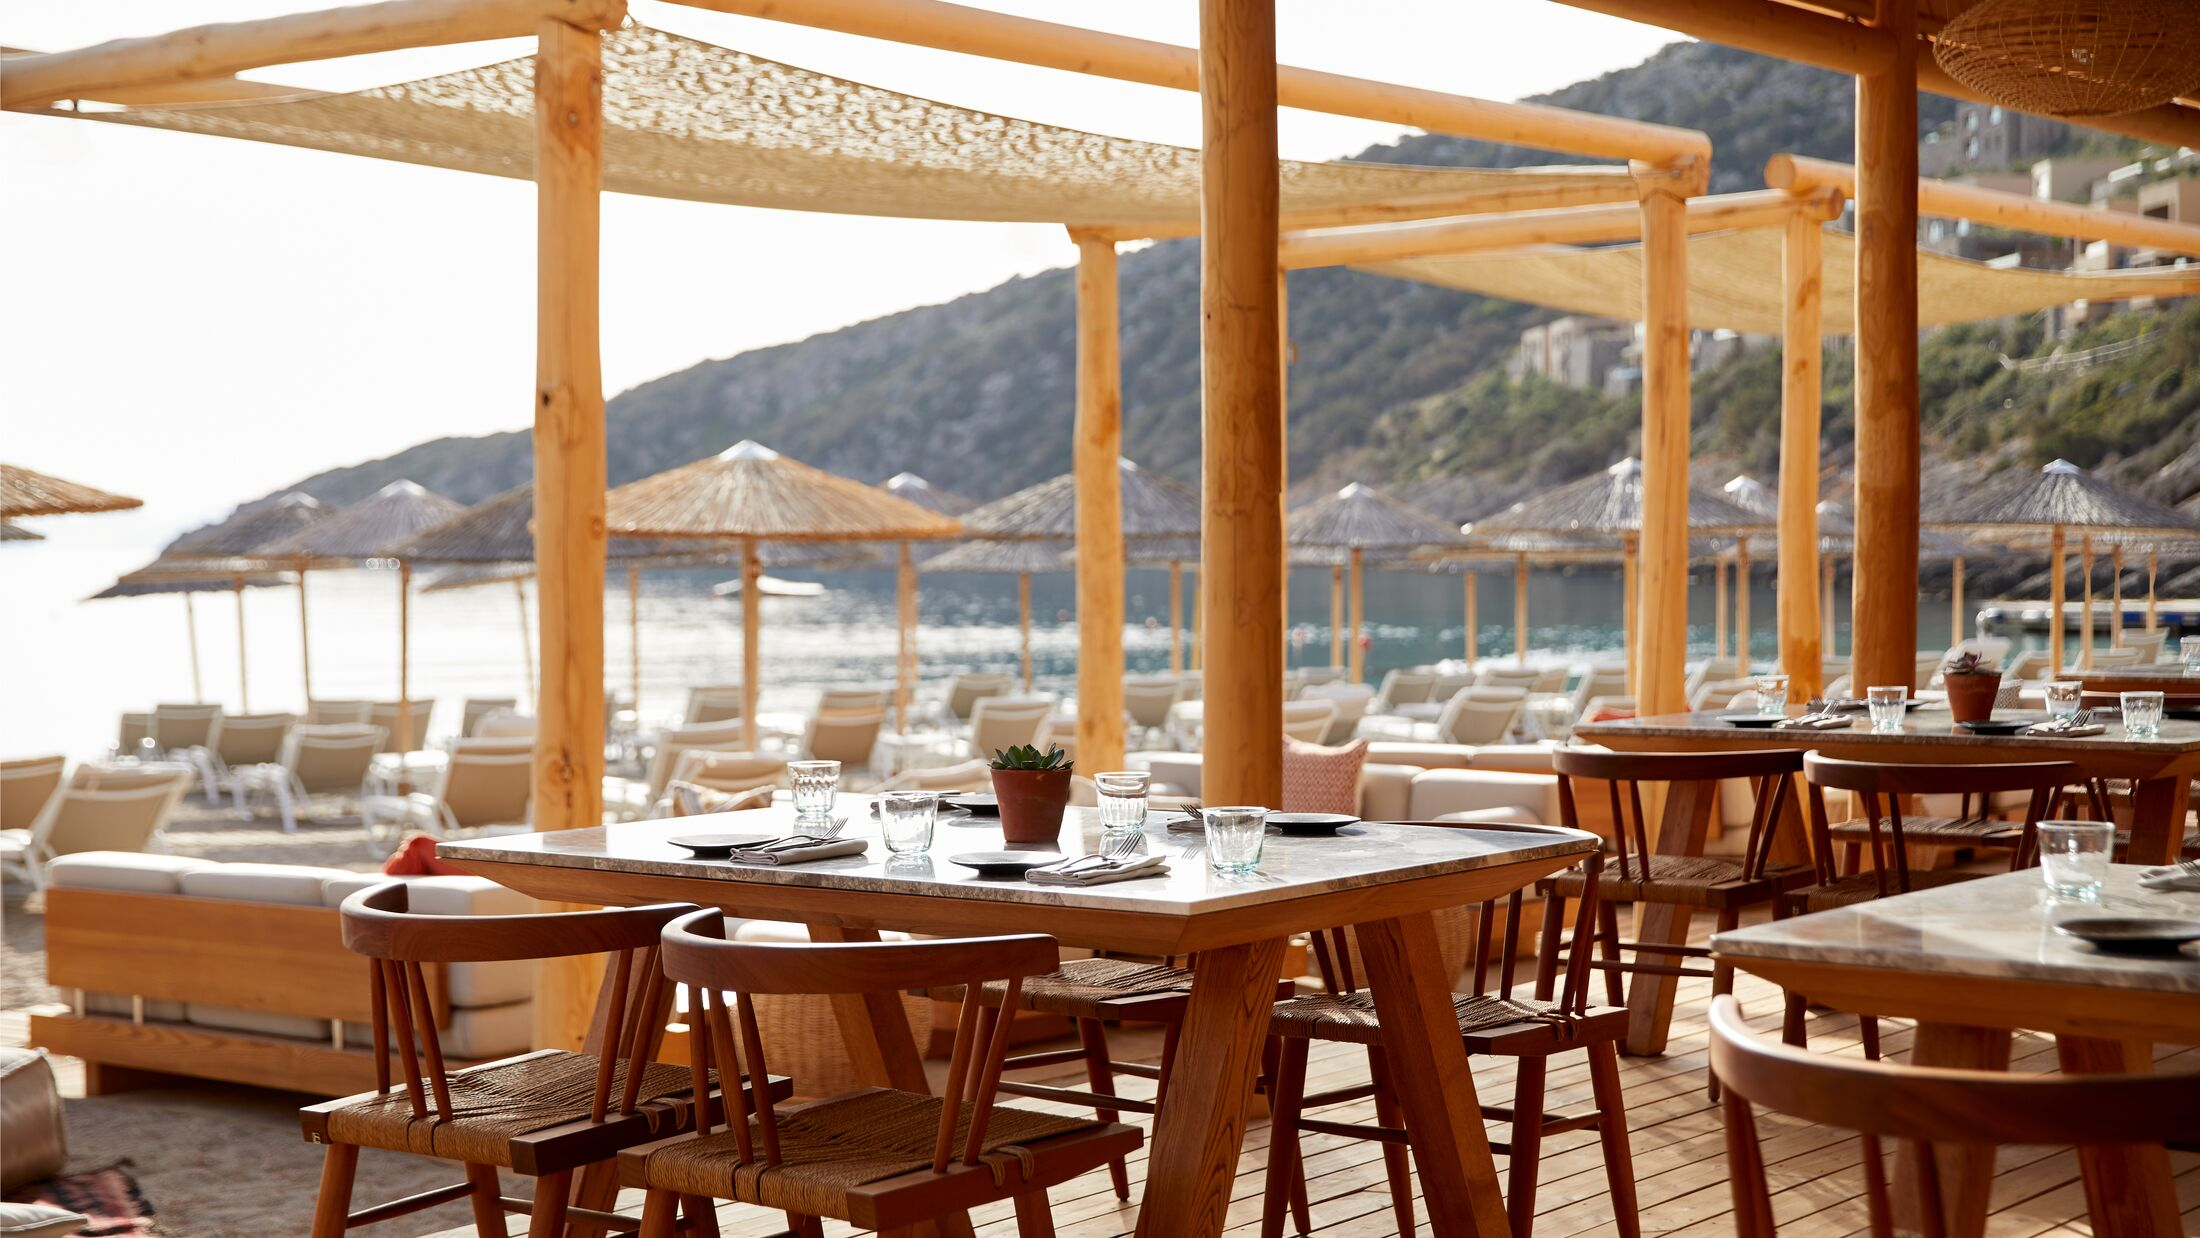 Daios-Cove-Beach-House-Day-Restaurant-001-118431-Hybris